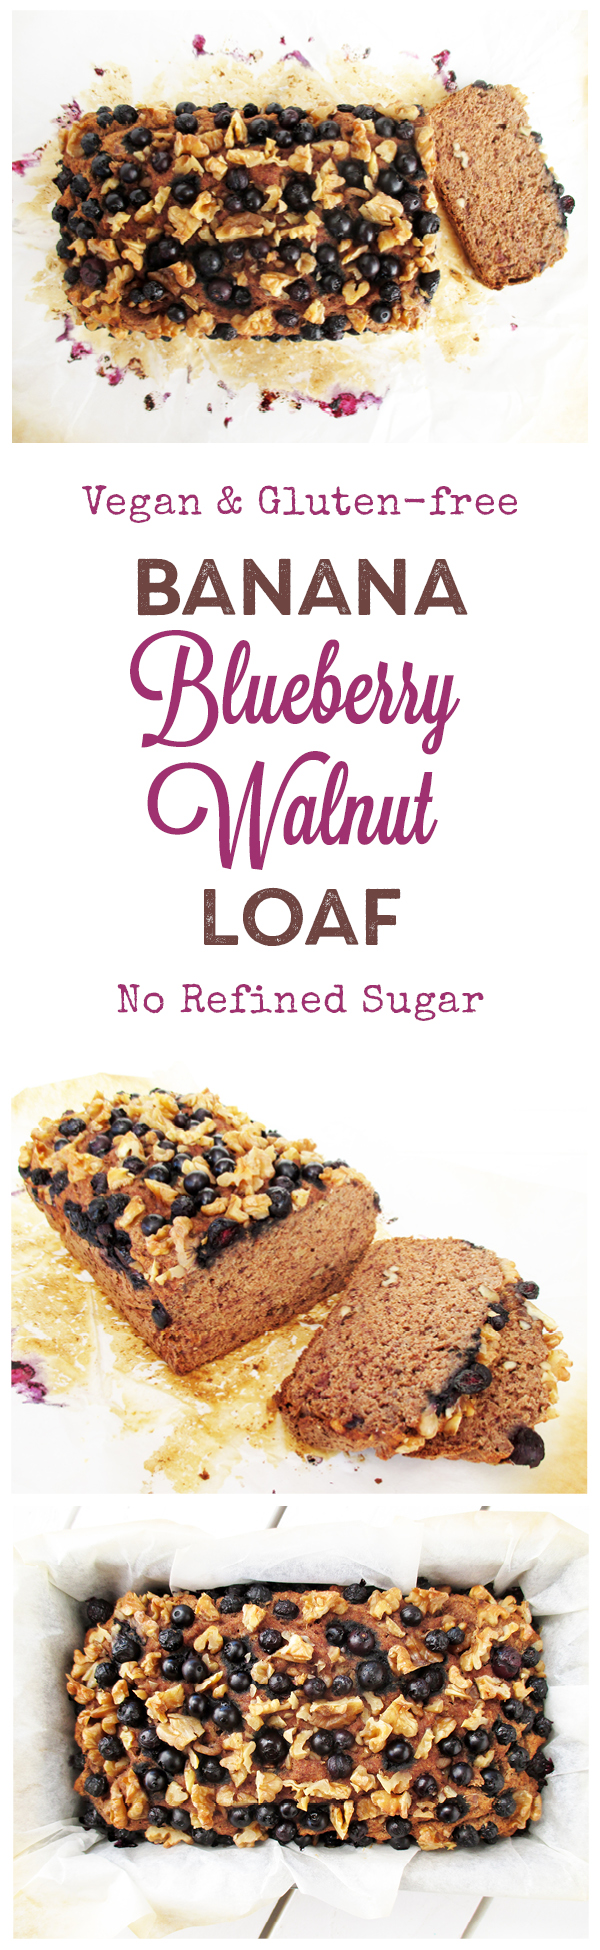 Vegan Gluten-free Banana Walnut Blueberry Loaf Without Refined Sugar Recipe